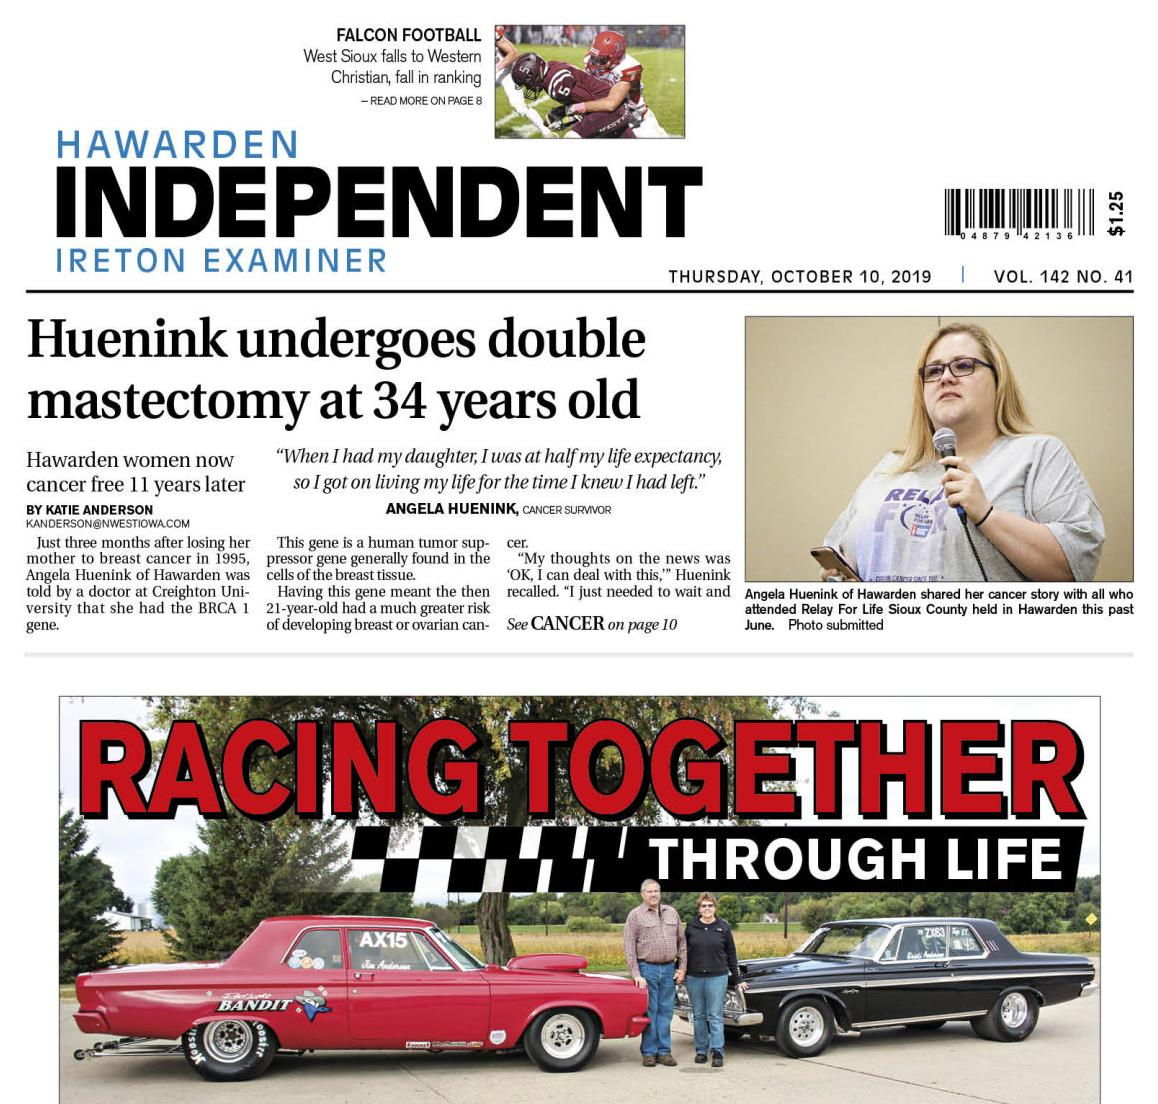 Hawarden Independent/Ireton Examiner Oct. 10, 2019